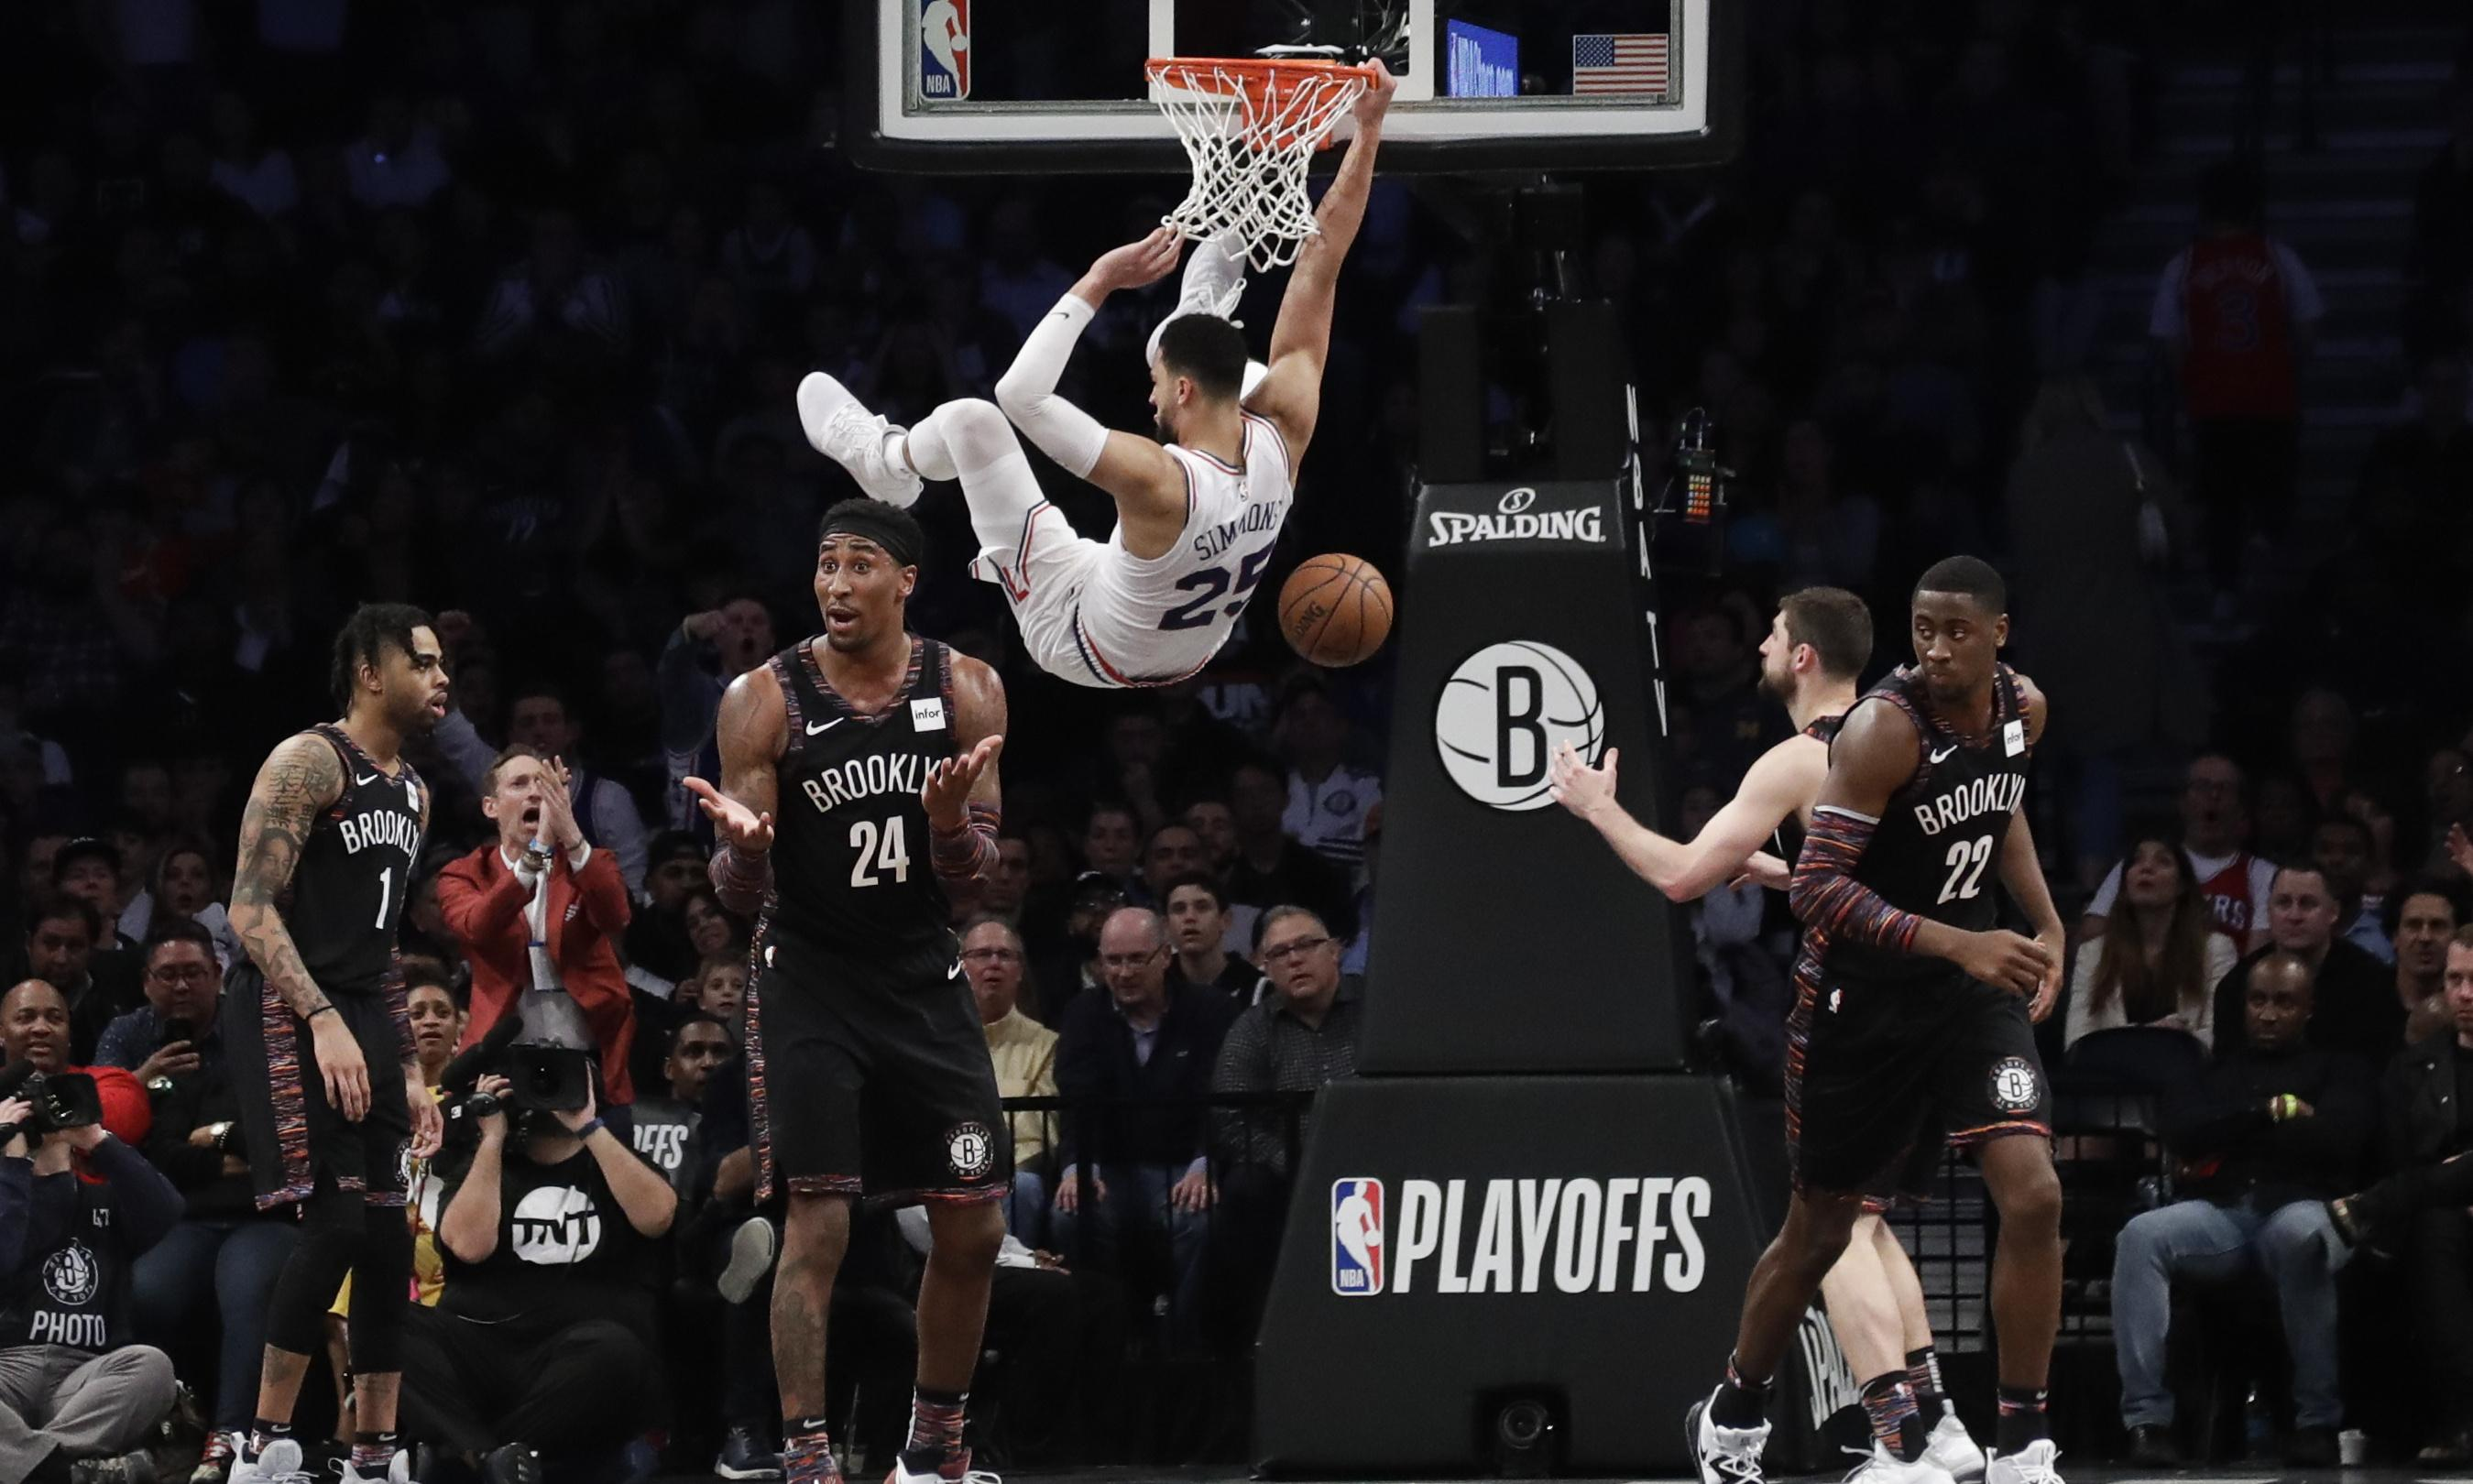 Ben Simmons shows NBA worth as Brooklyn Nets crushed